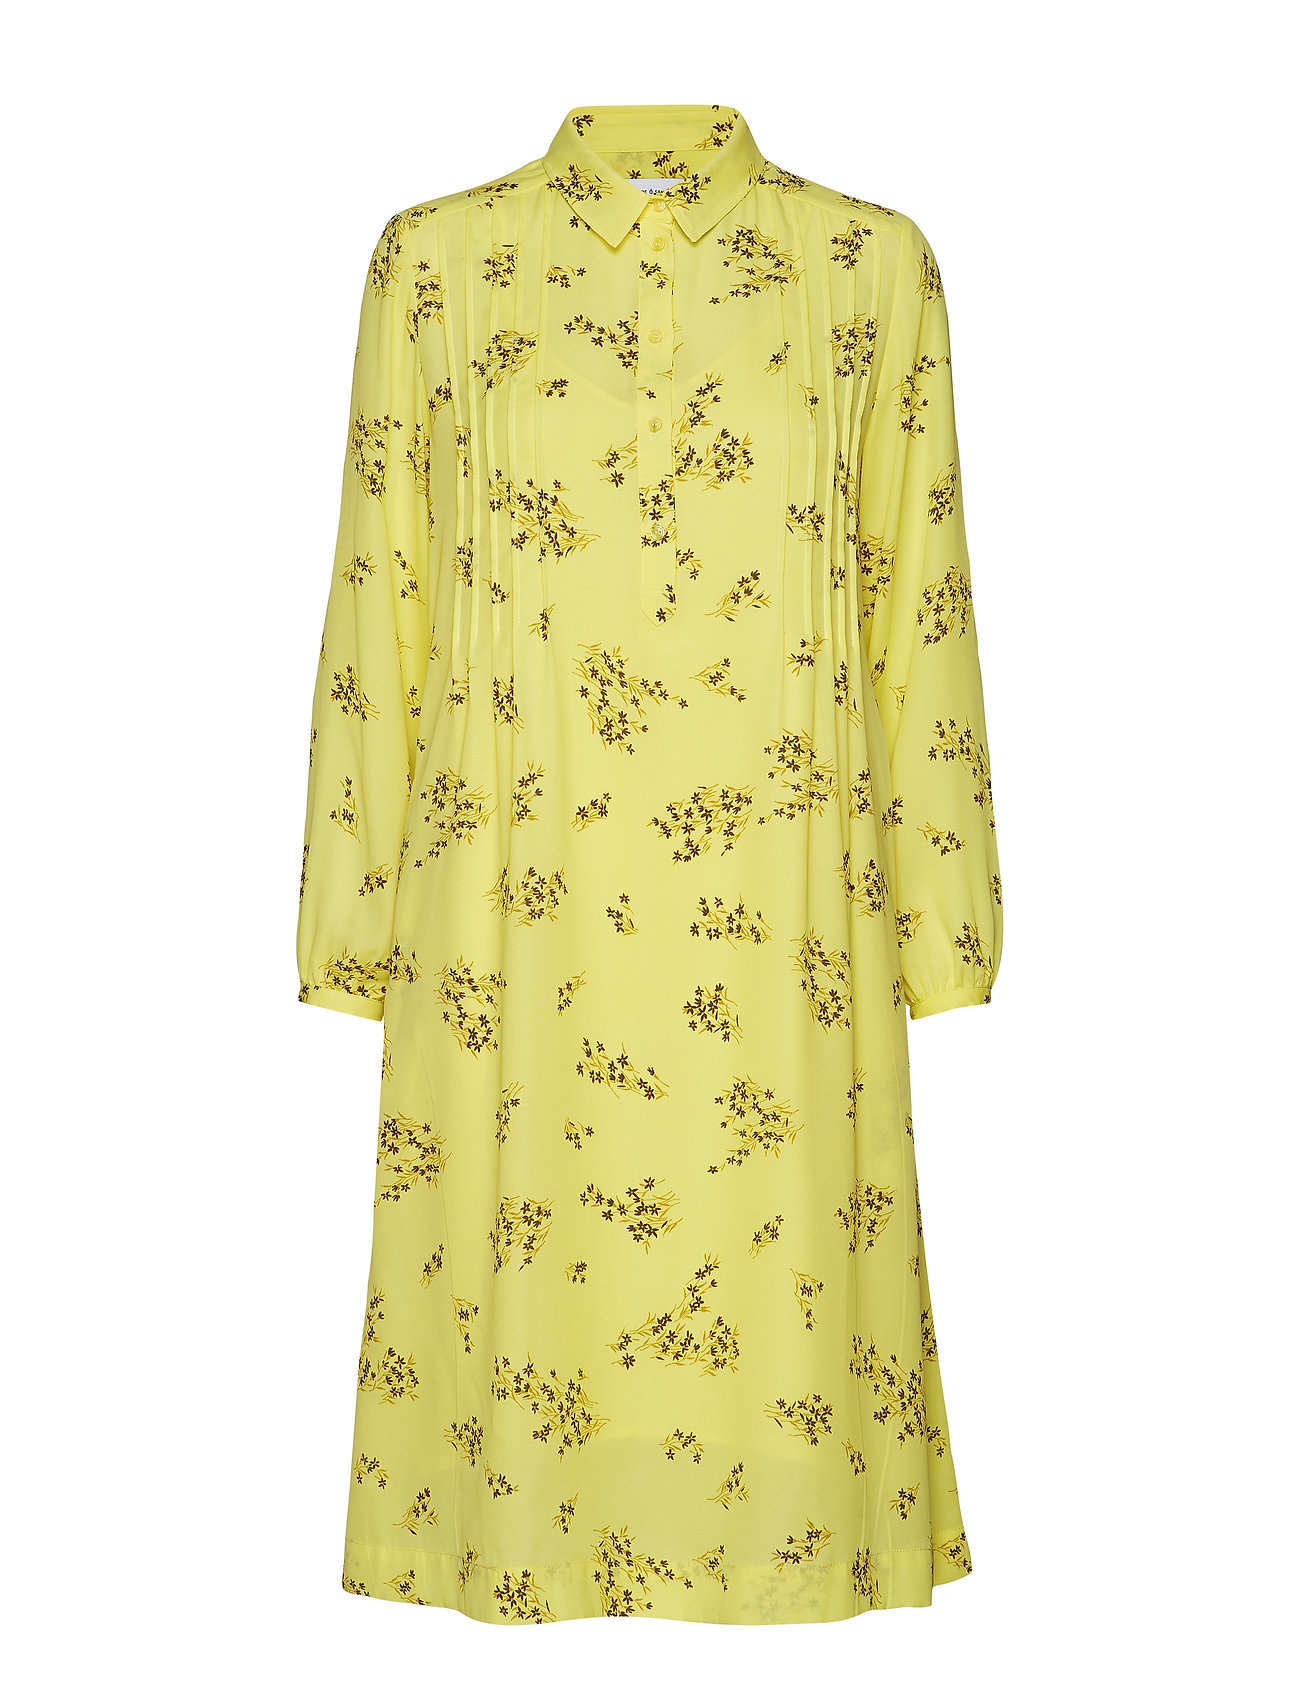 Samsøe Samsøe Musa shirt dress aop 6891 - YELLOW BREEZE